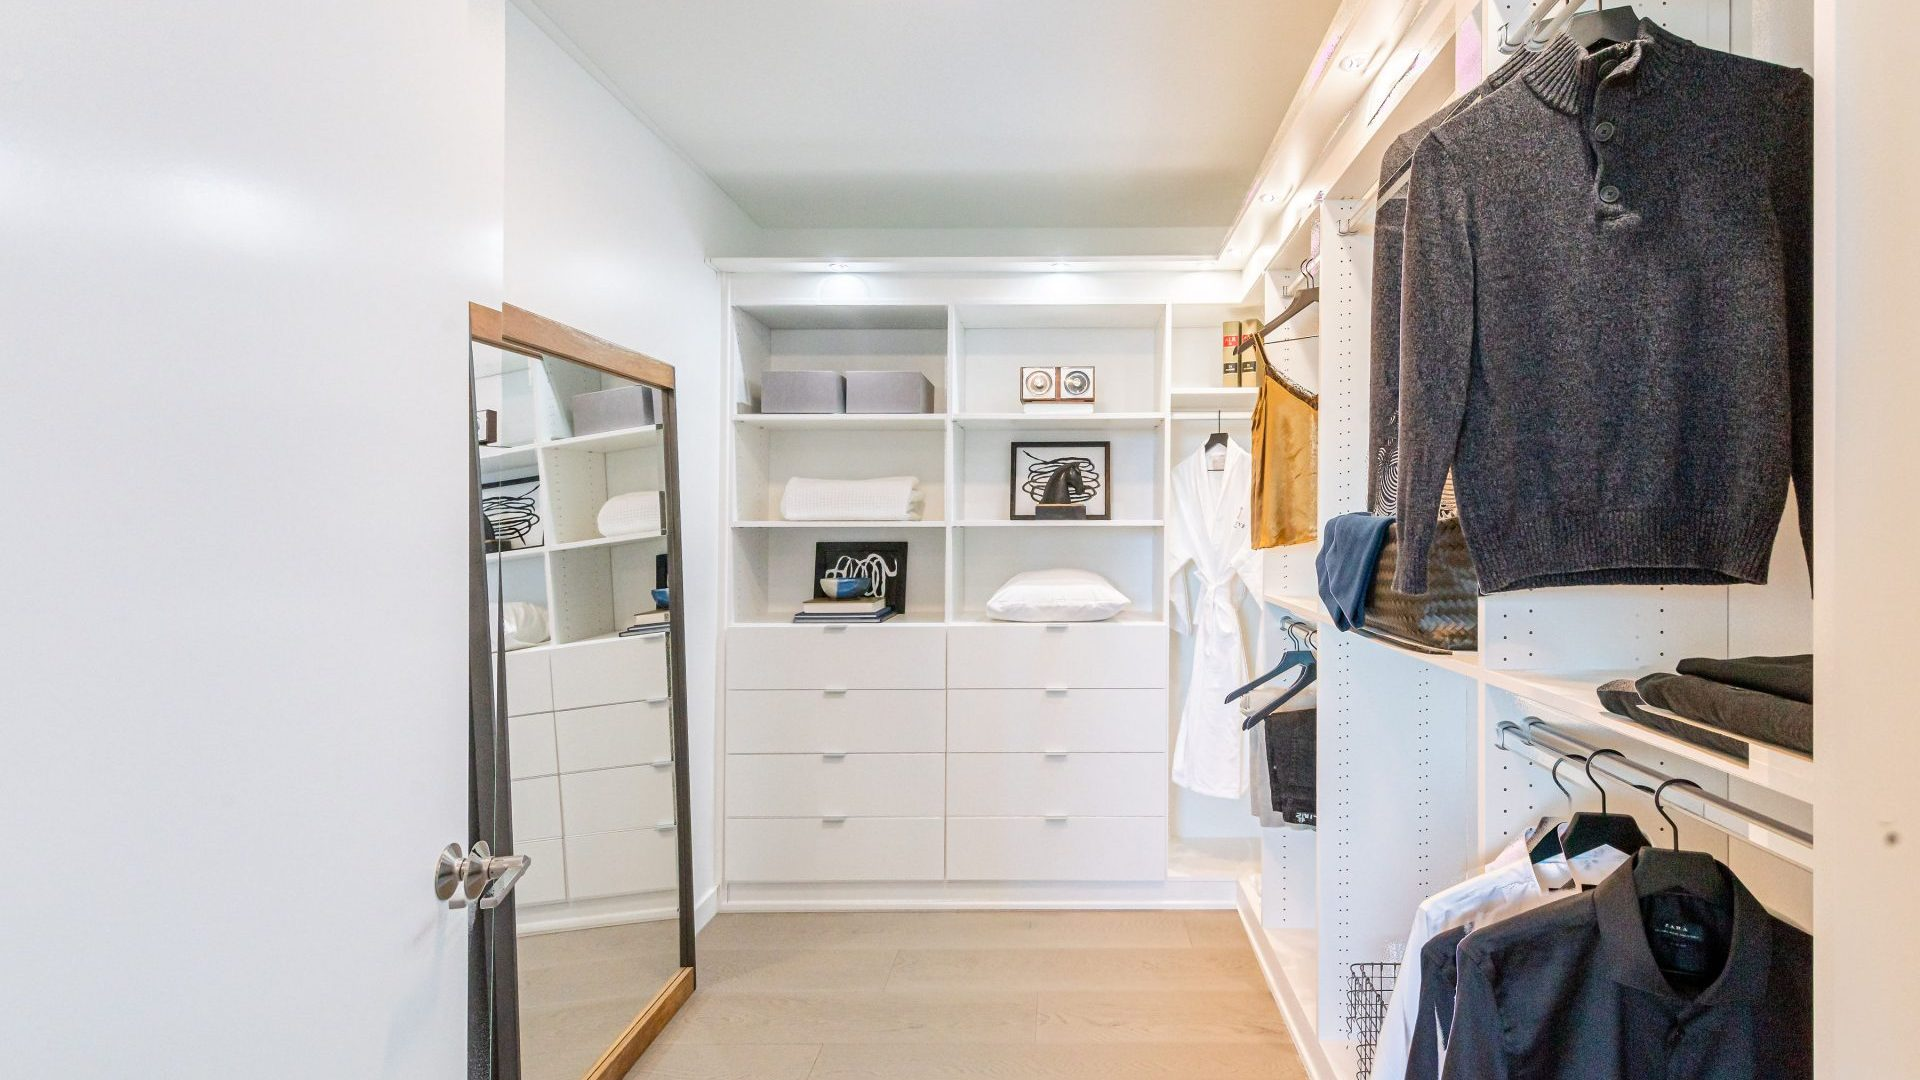 Spacious Apartment Walk-in Closets At Arrivé Apartments in Seattle, WA